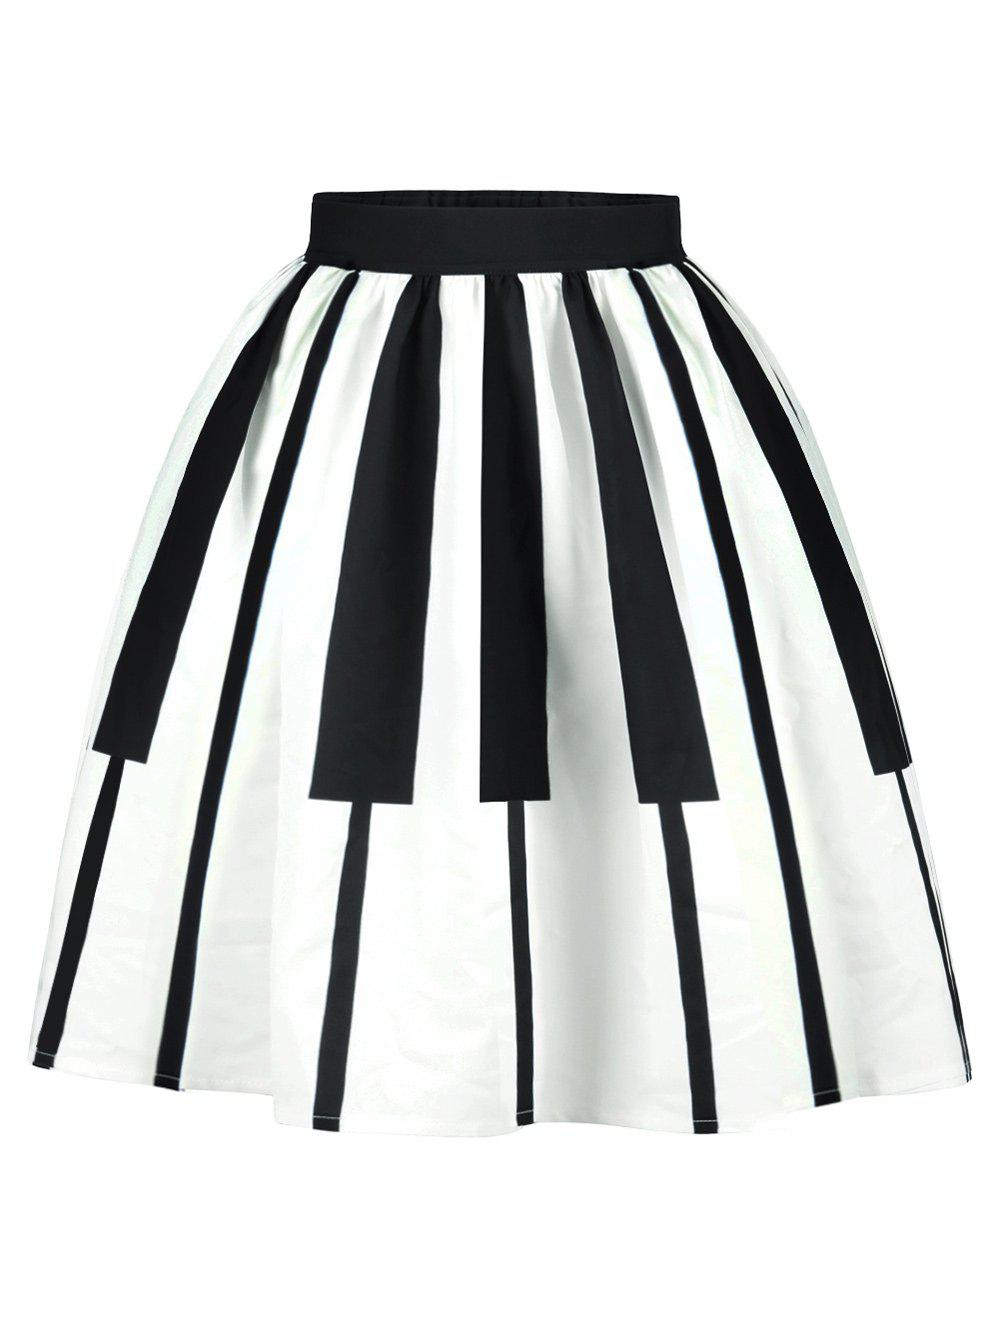 Striped High Waist Two Tone SkirtWOMEN<br><br>Size: M; Color: WHITE AND BLACK; Material: Polyester; Length: Mid-Calf; Silhouette: A-Line; Pattern Type: Striped; Season: Summer; With Belt: No; Weight: 0.2900kg; Package Contents: 1 x Skirt;